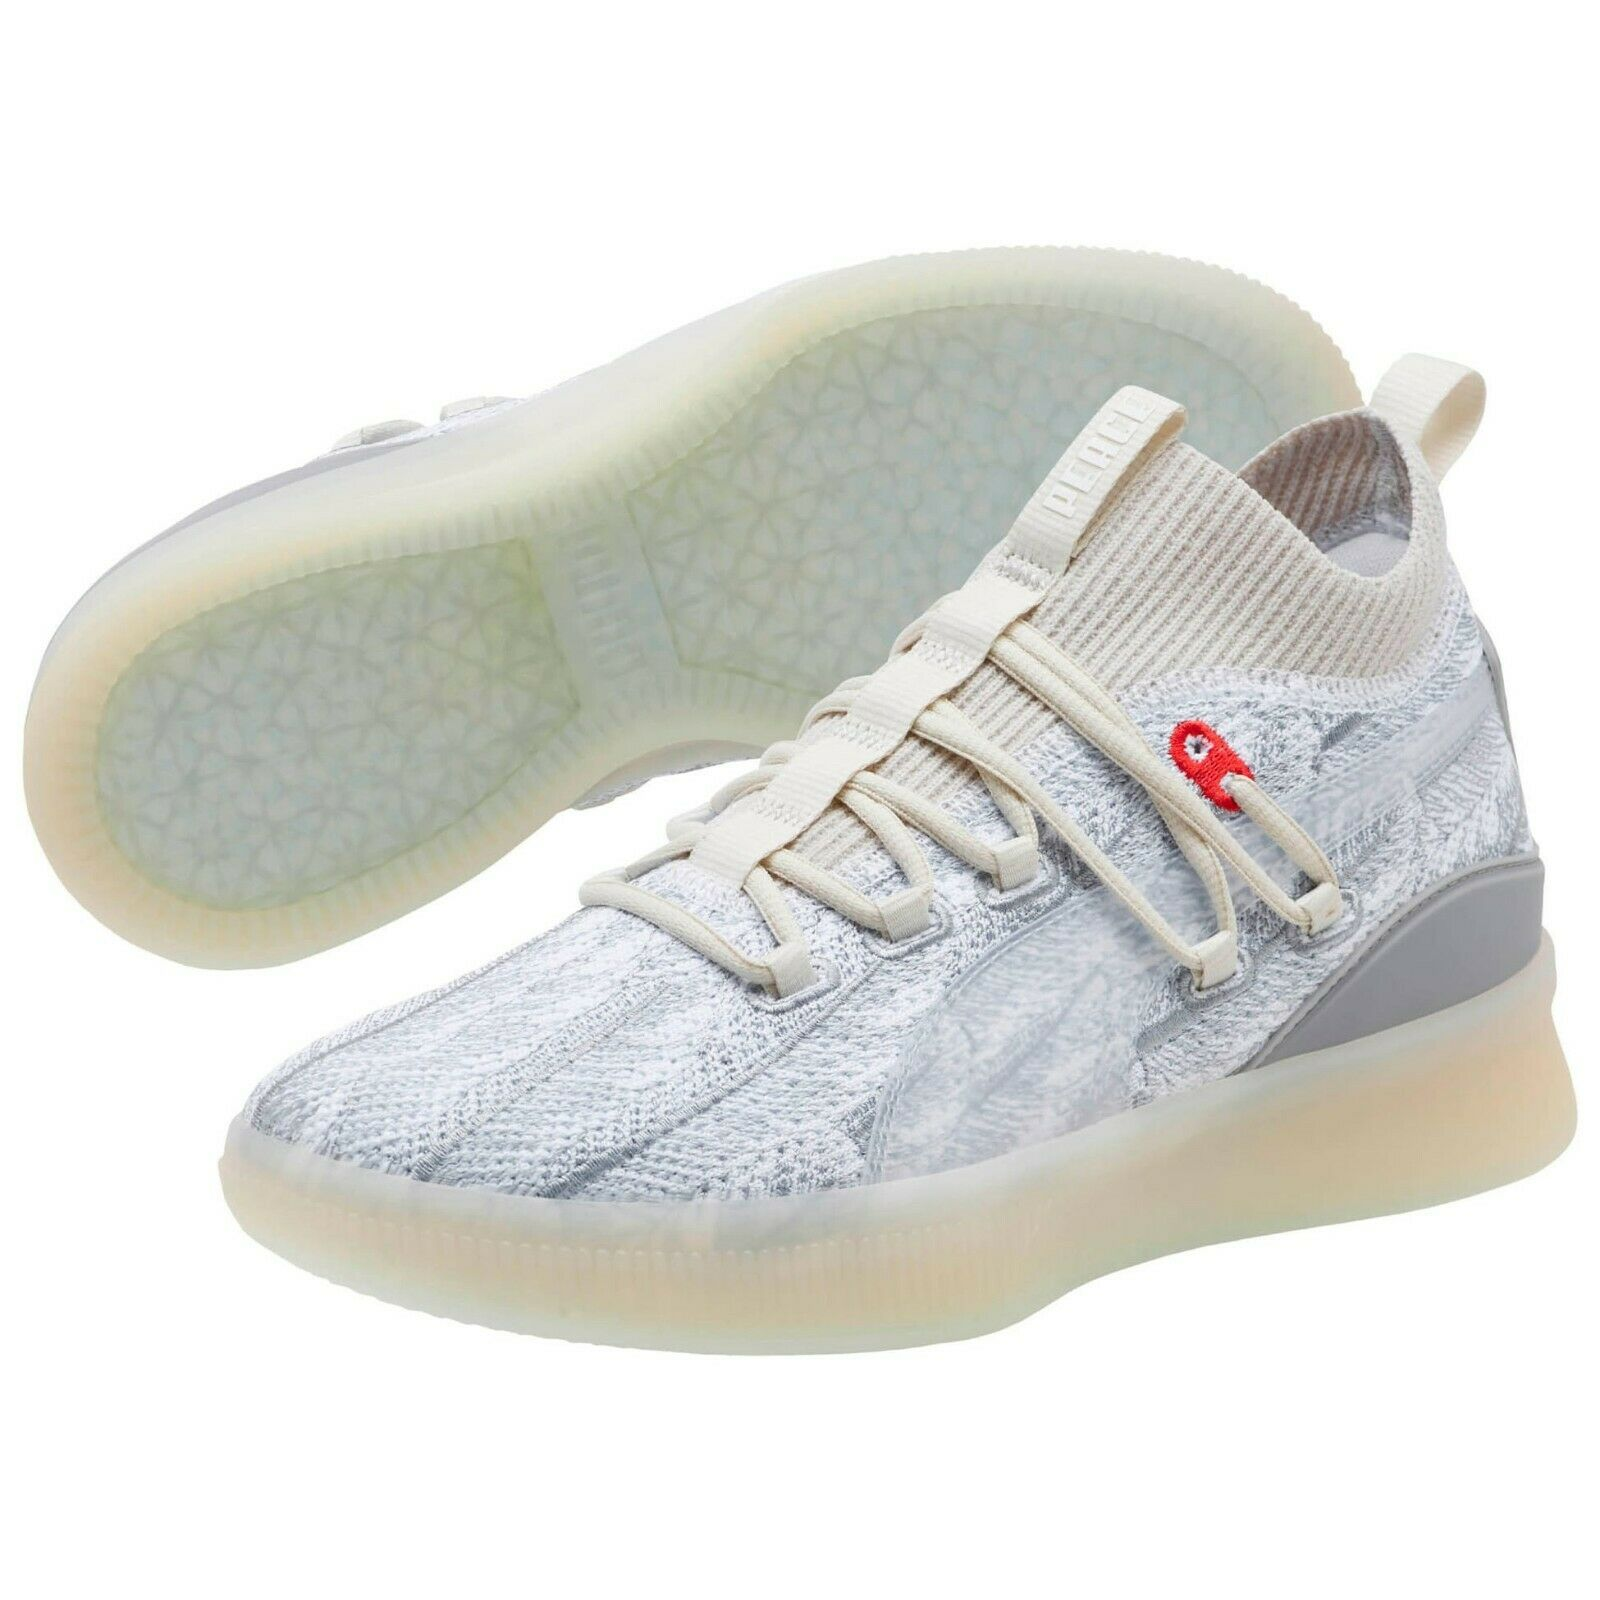 PUMA CLYDE COURT PEACE ON EARTH Mens